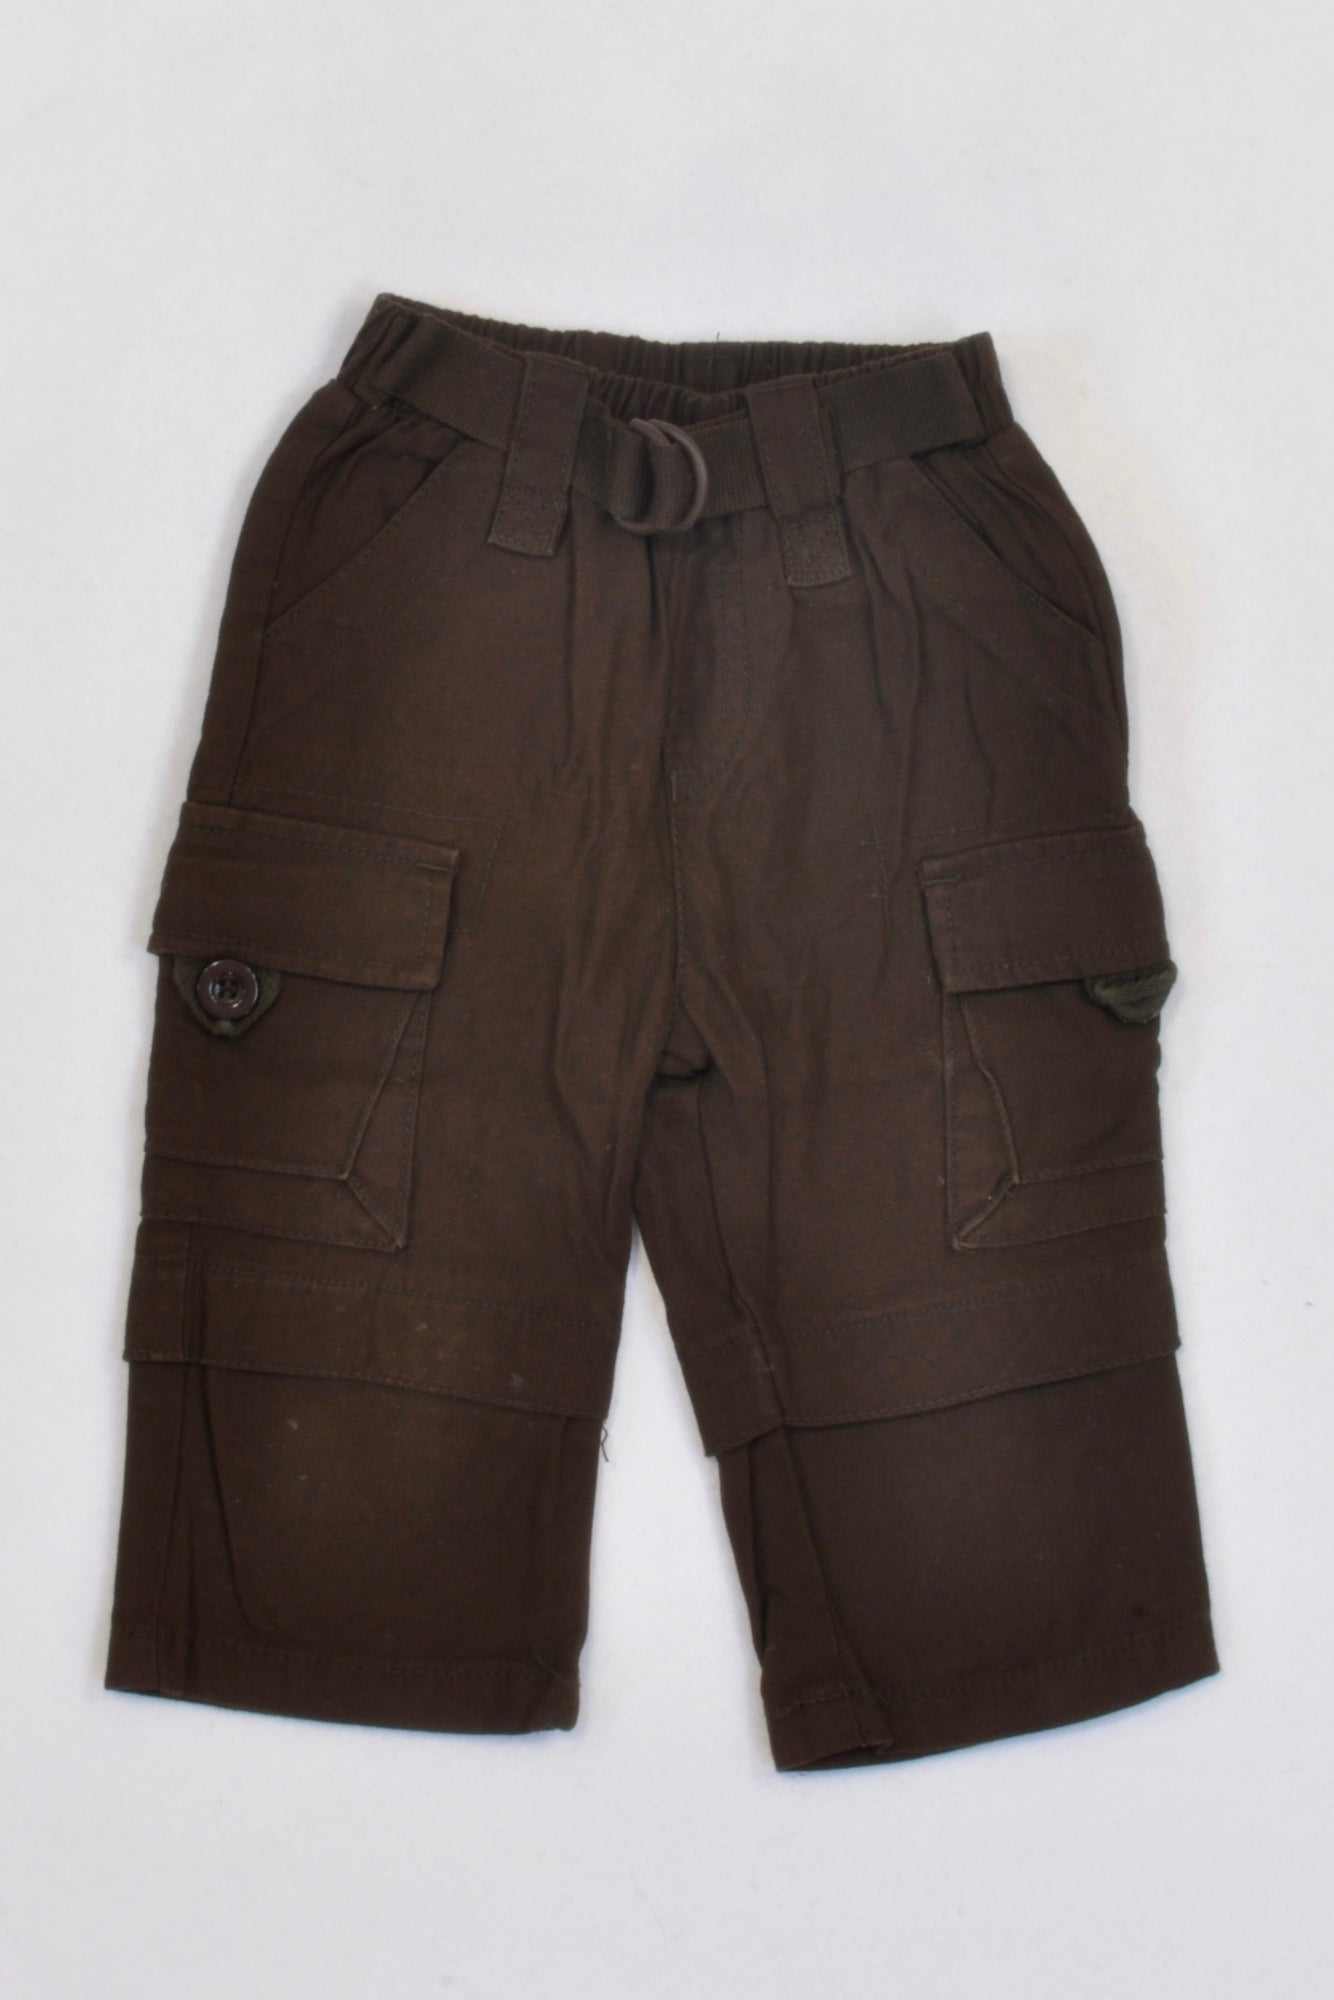 Ackermans Chocolate Brown Cargo Pants Boys 6-12 months